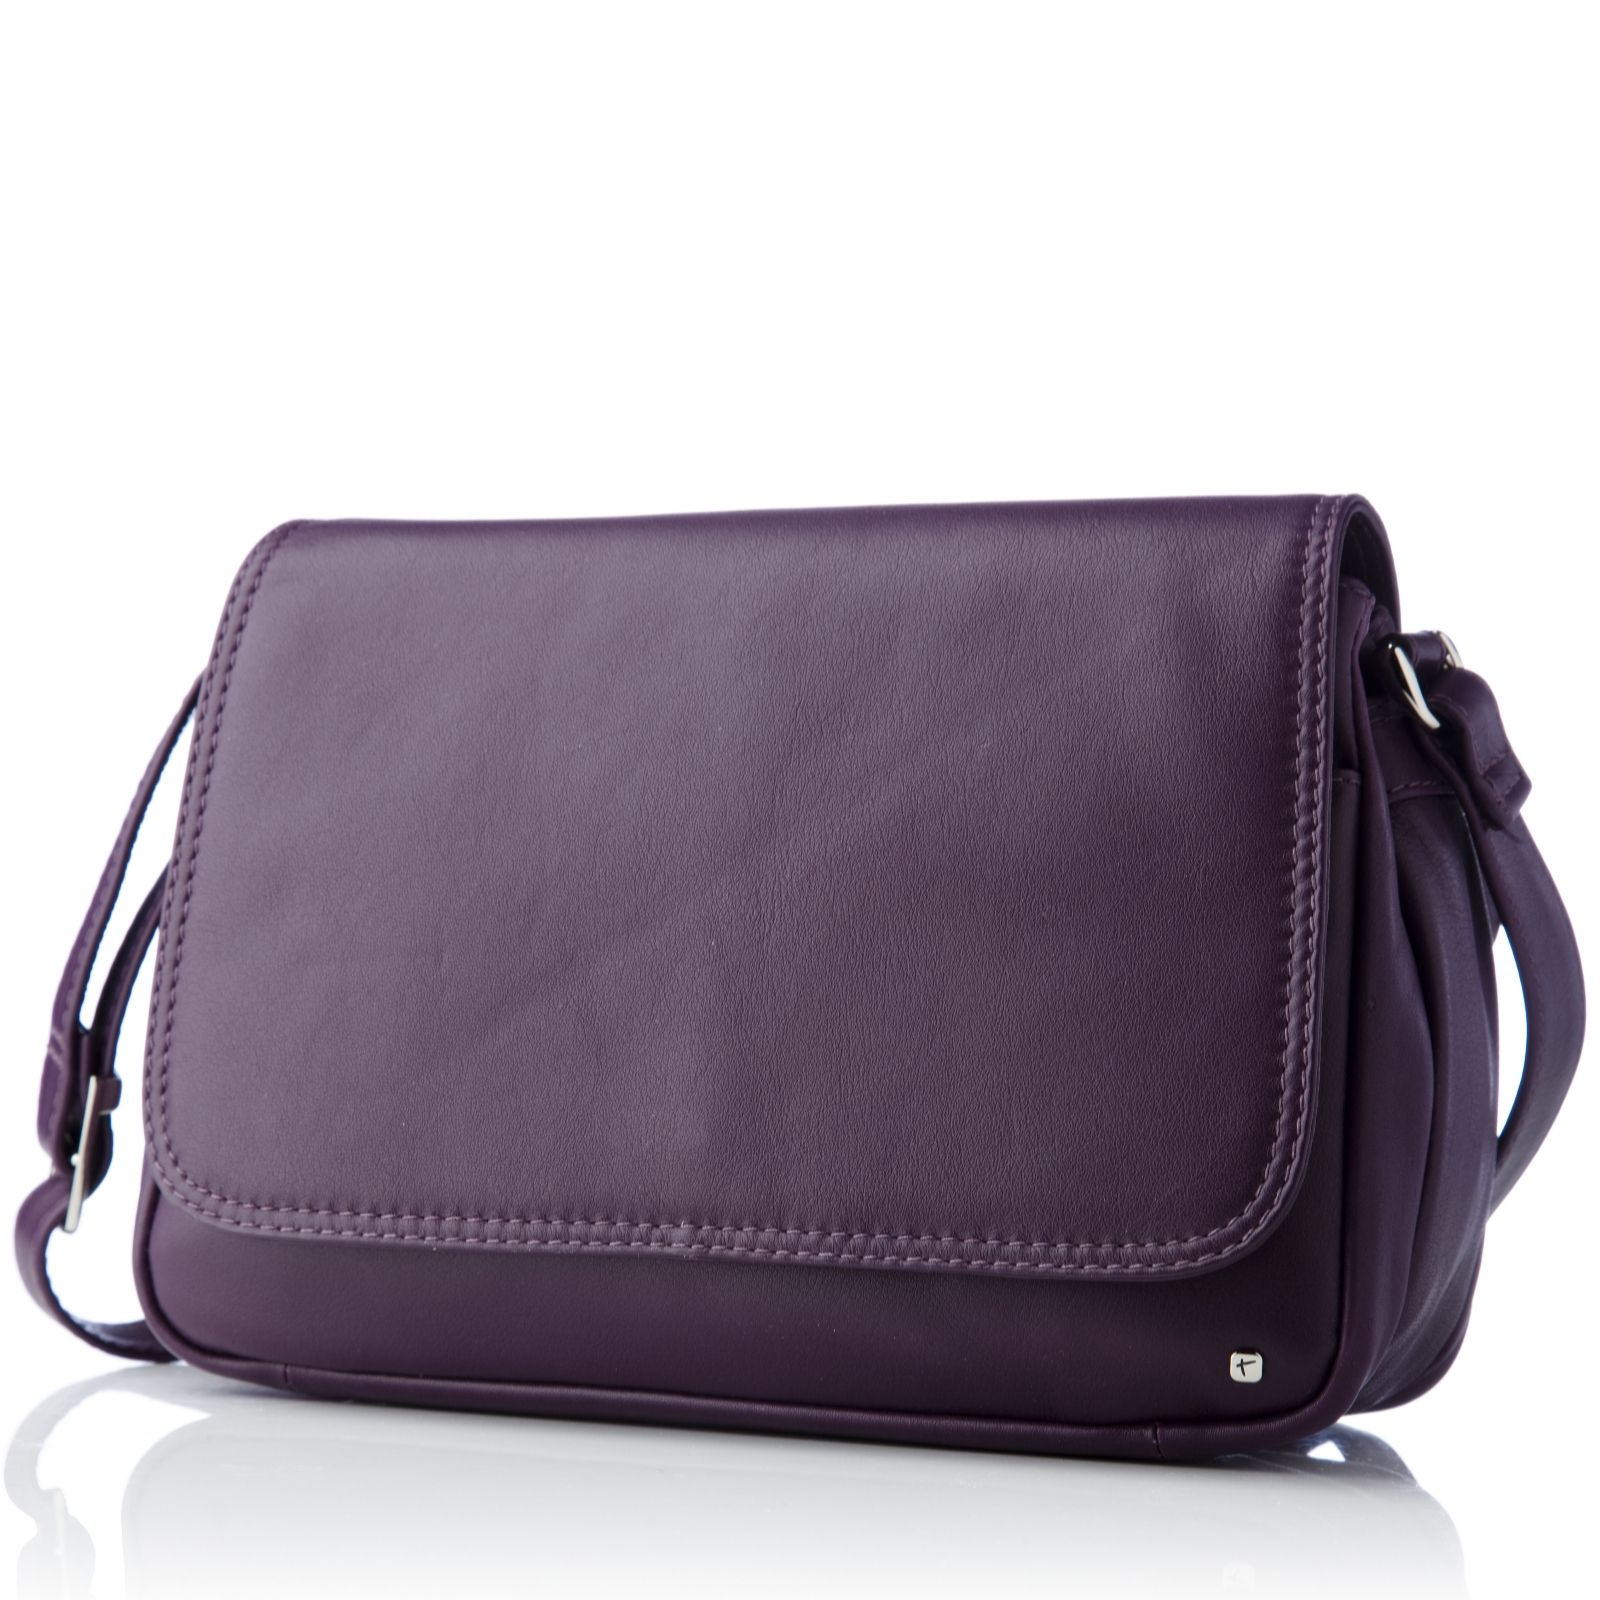 1748a864ce Tula Originals Leather Medium Flapover Cross Body Bag - QVC UK